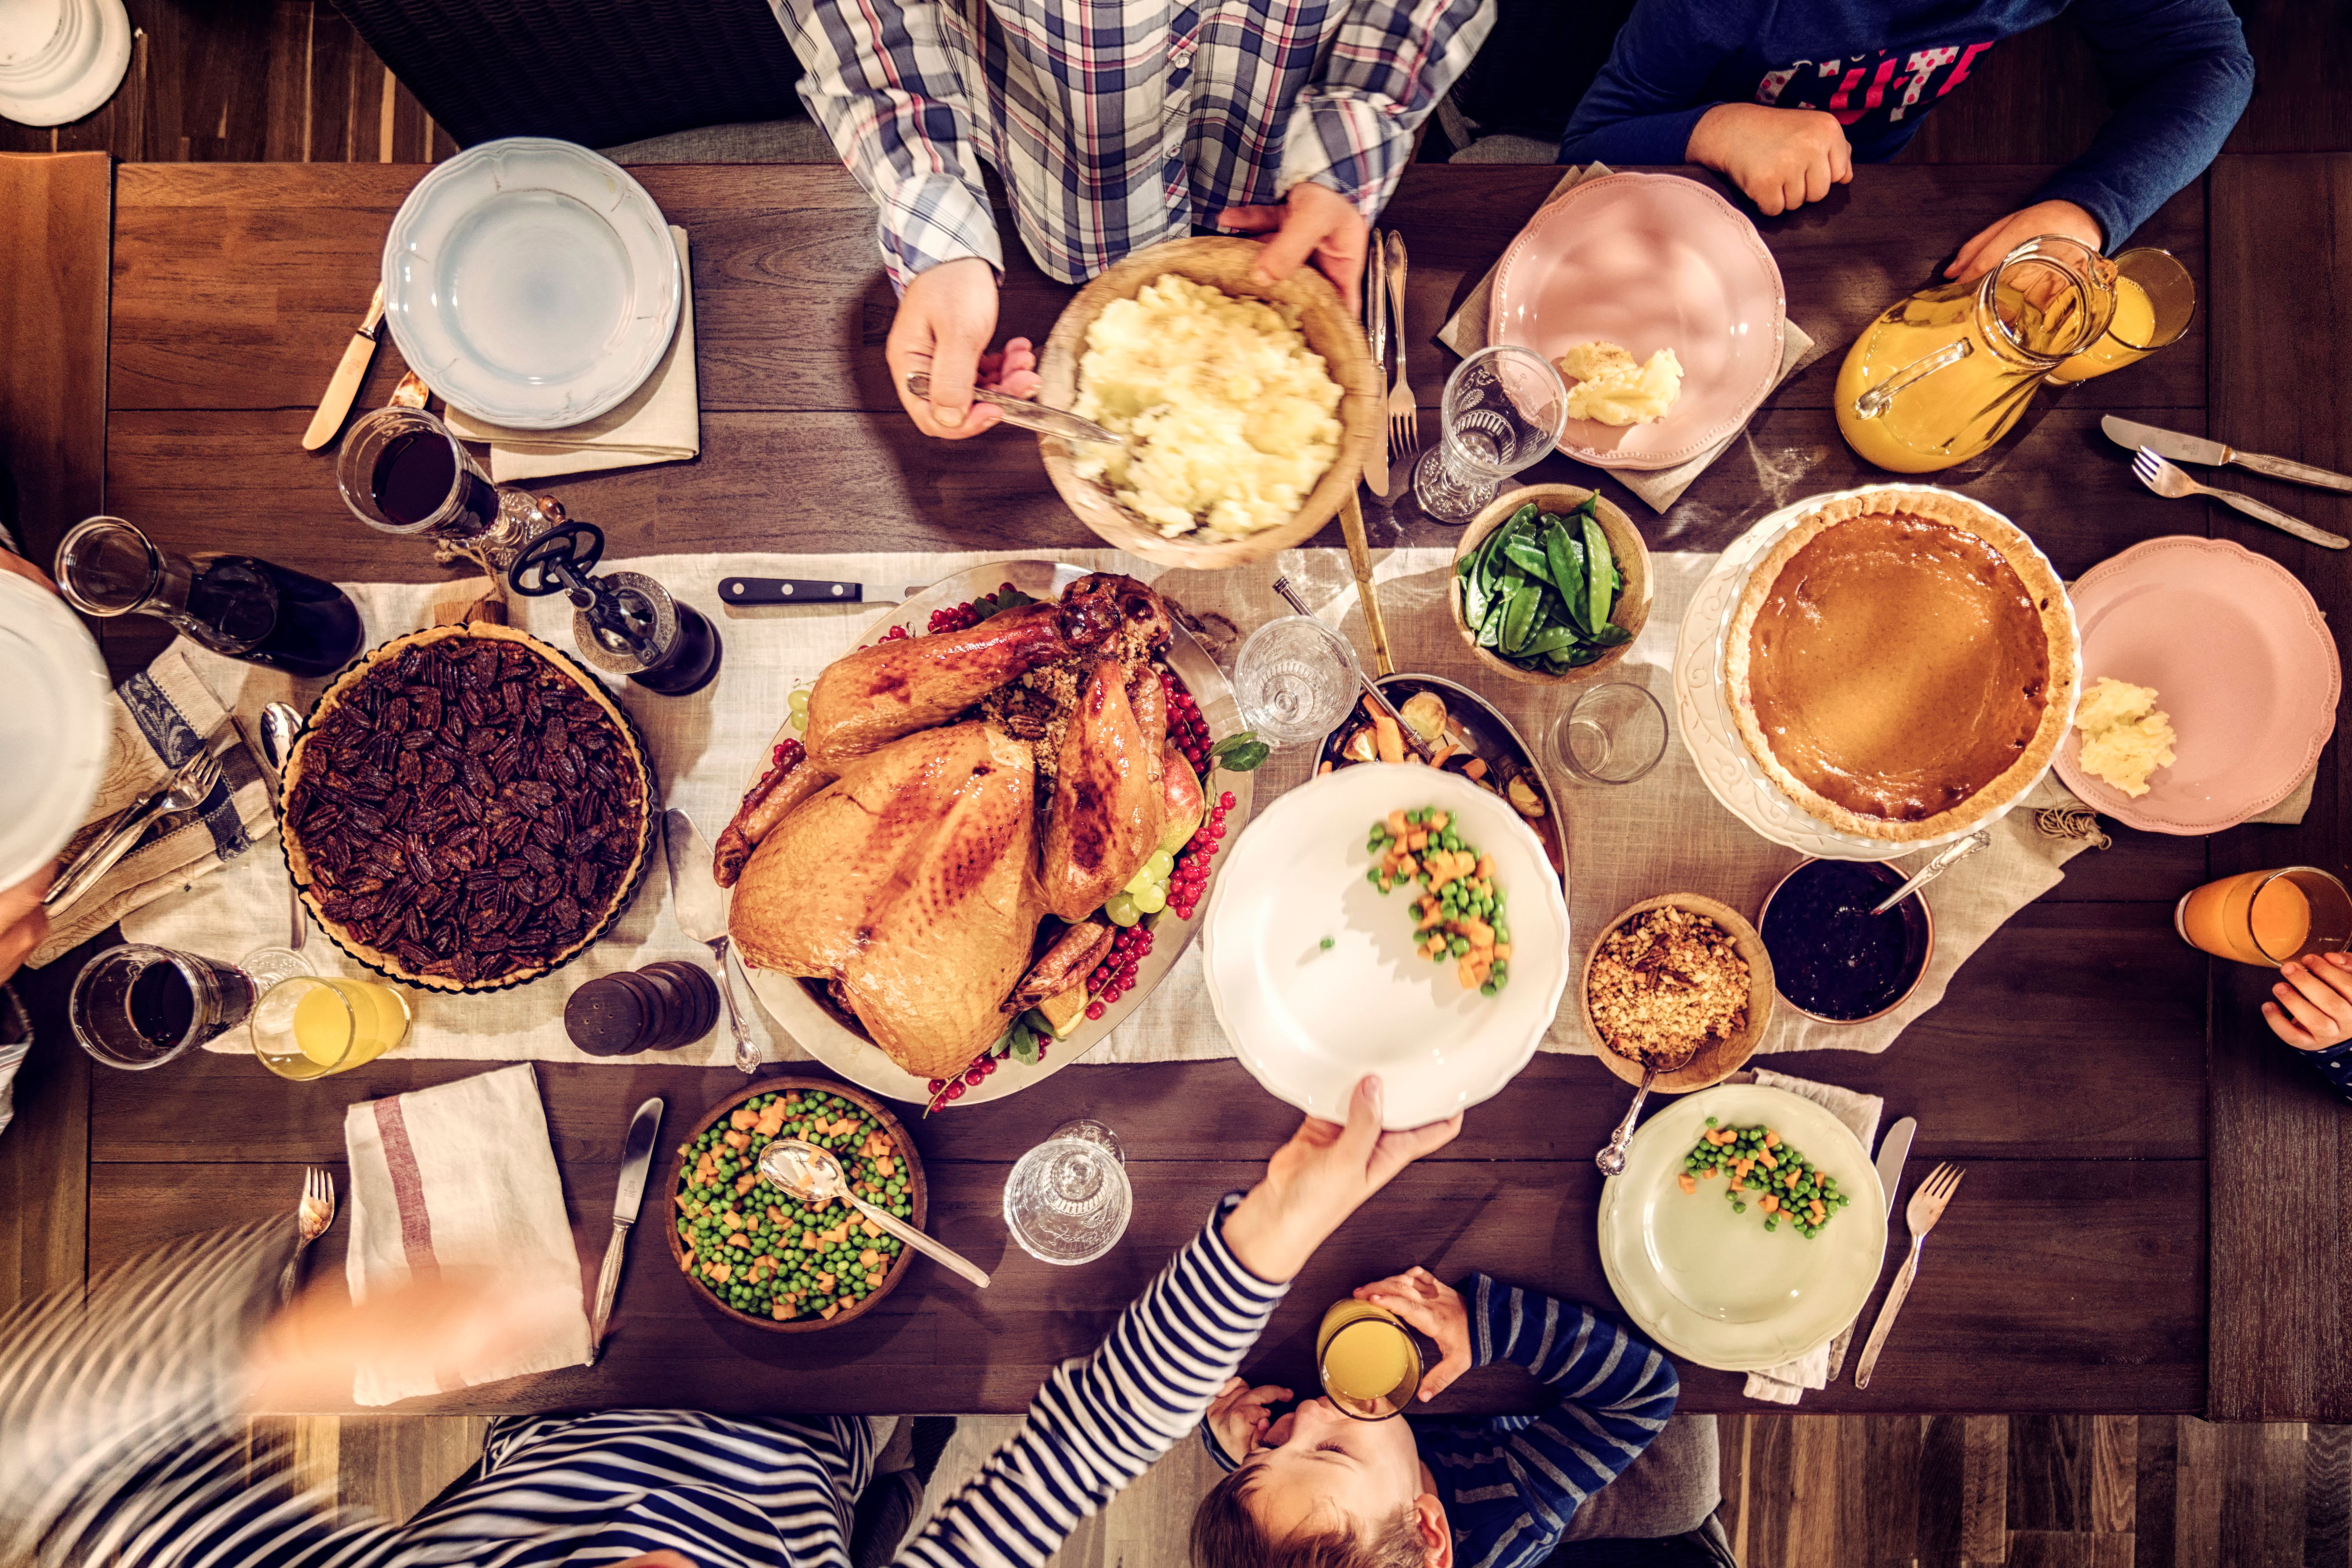 Thanksgiving traditions can vary by region.